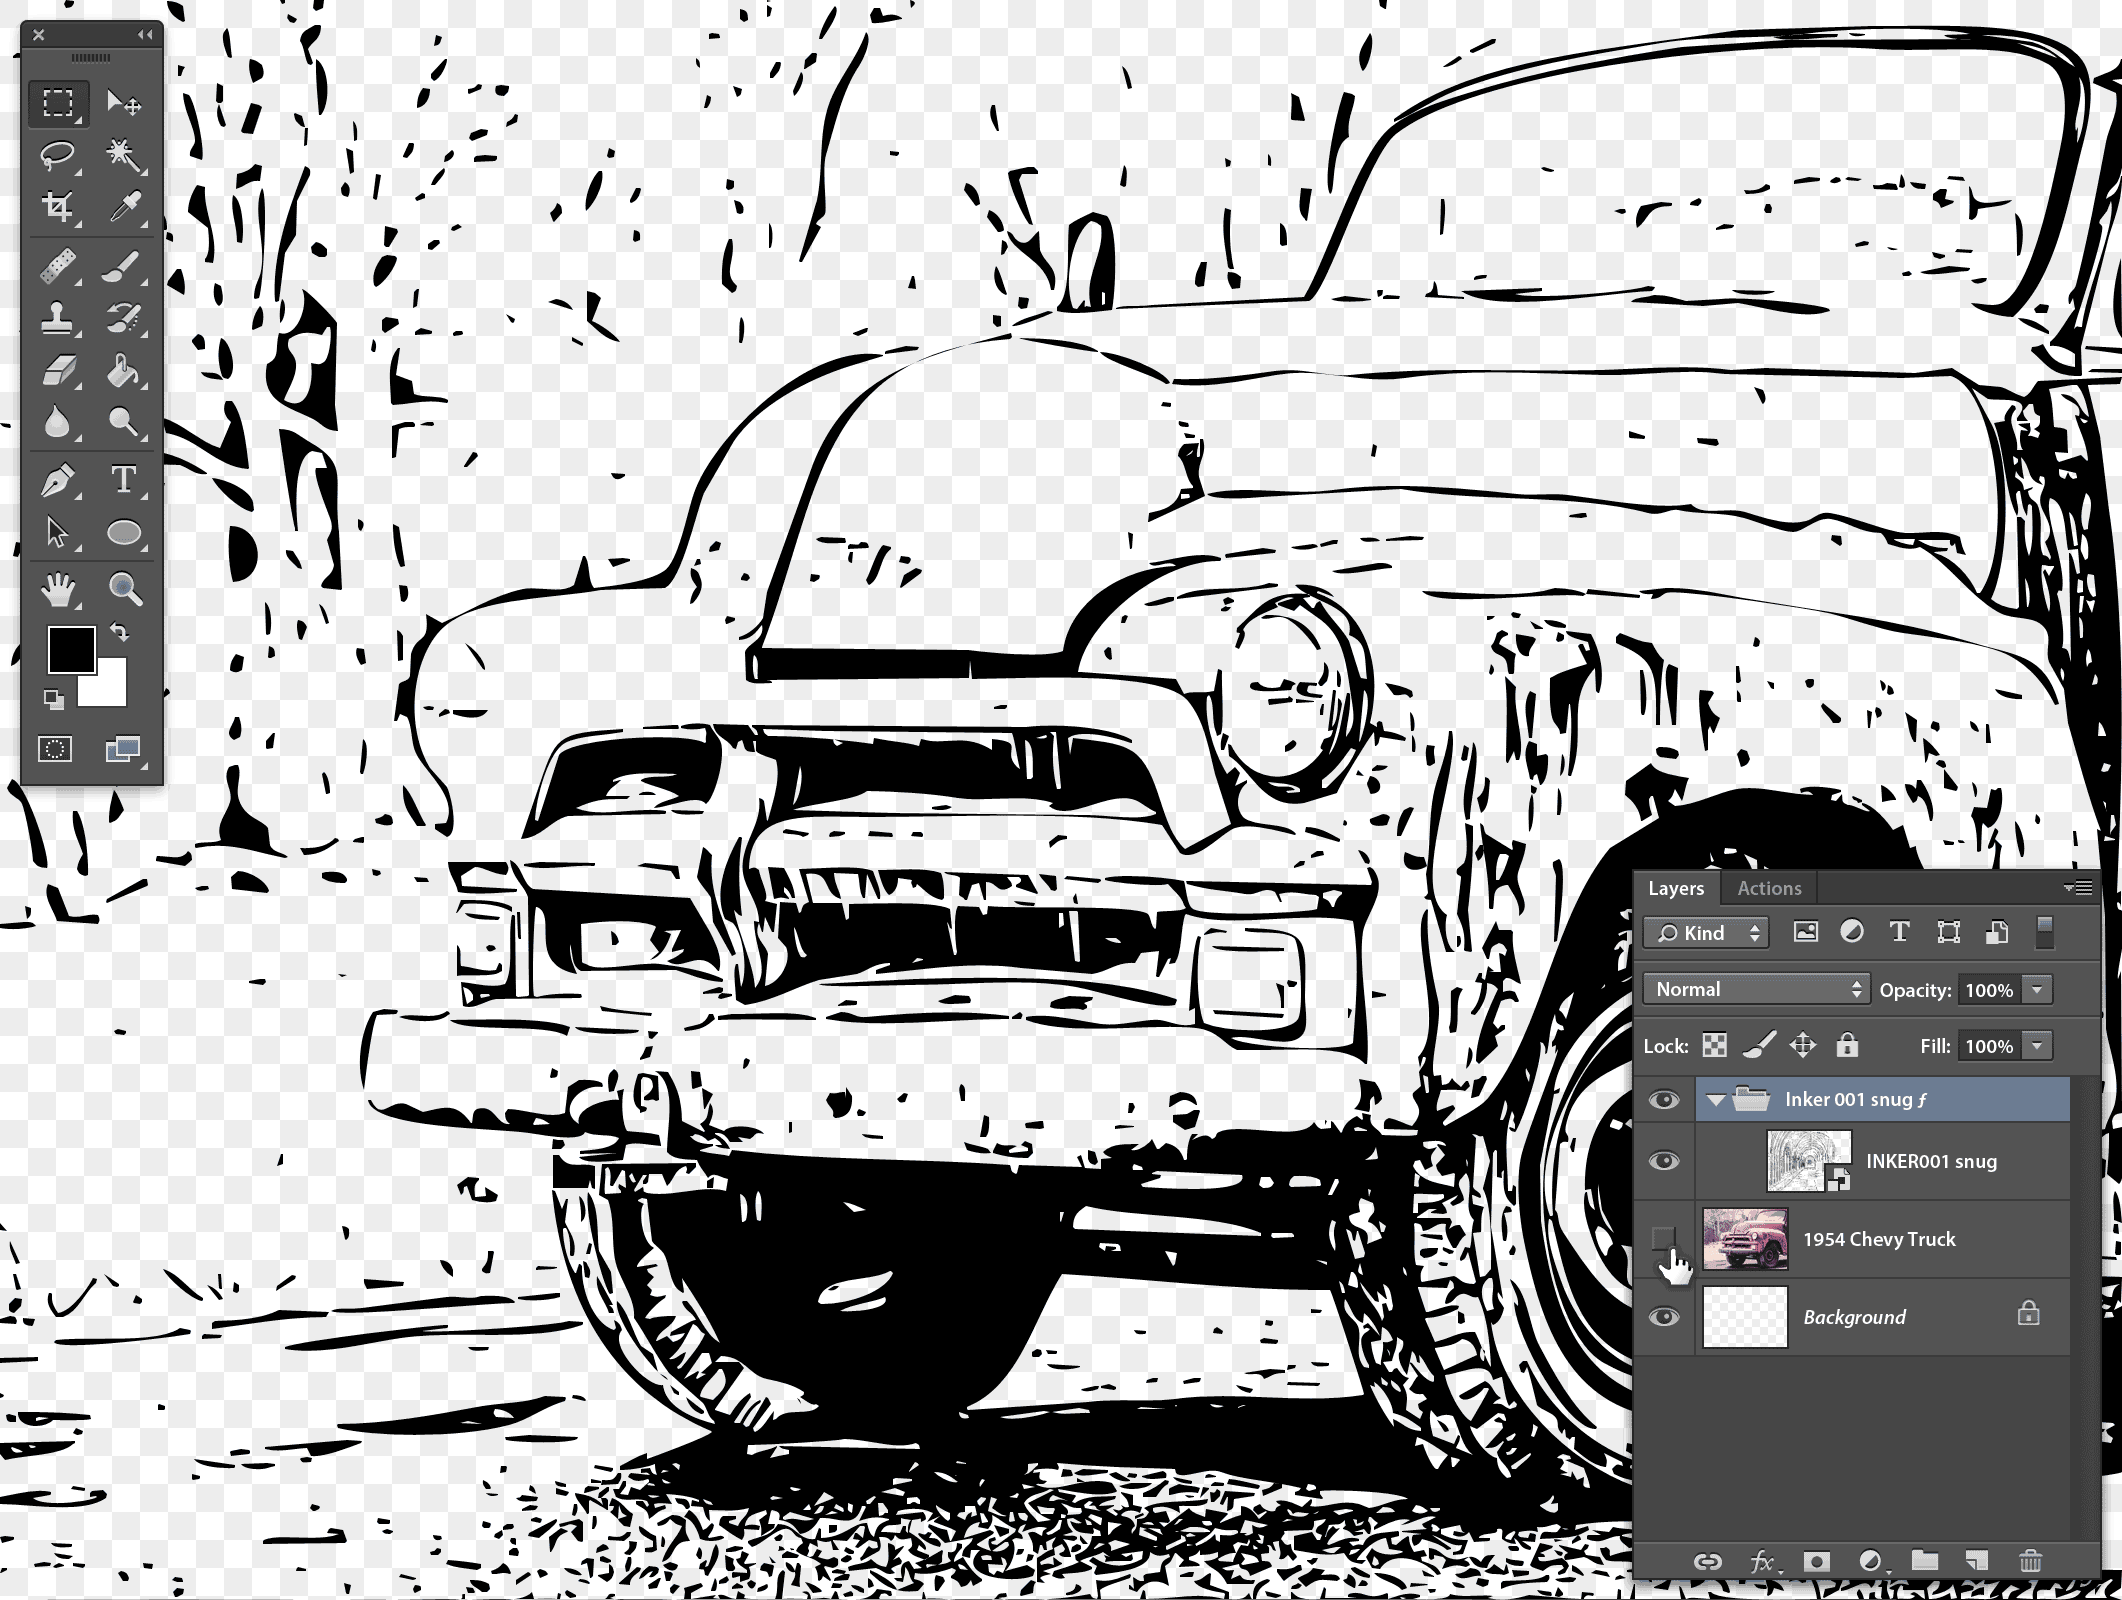 Stipplr graphic novel line art inker001 1954 chevy hidden for better view